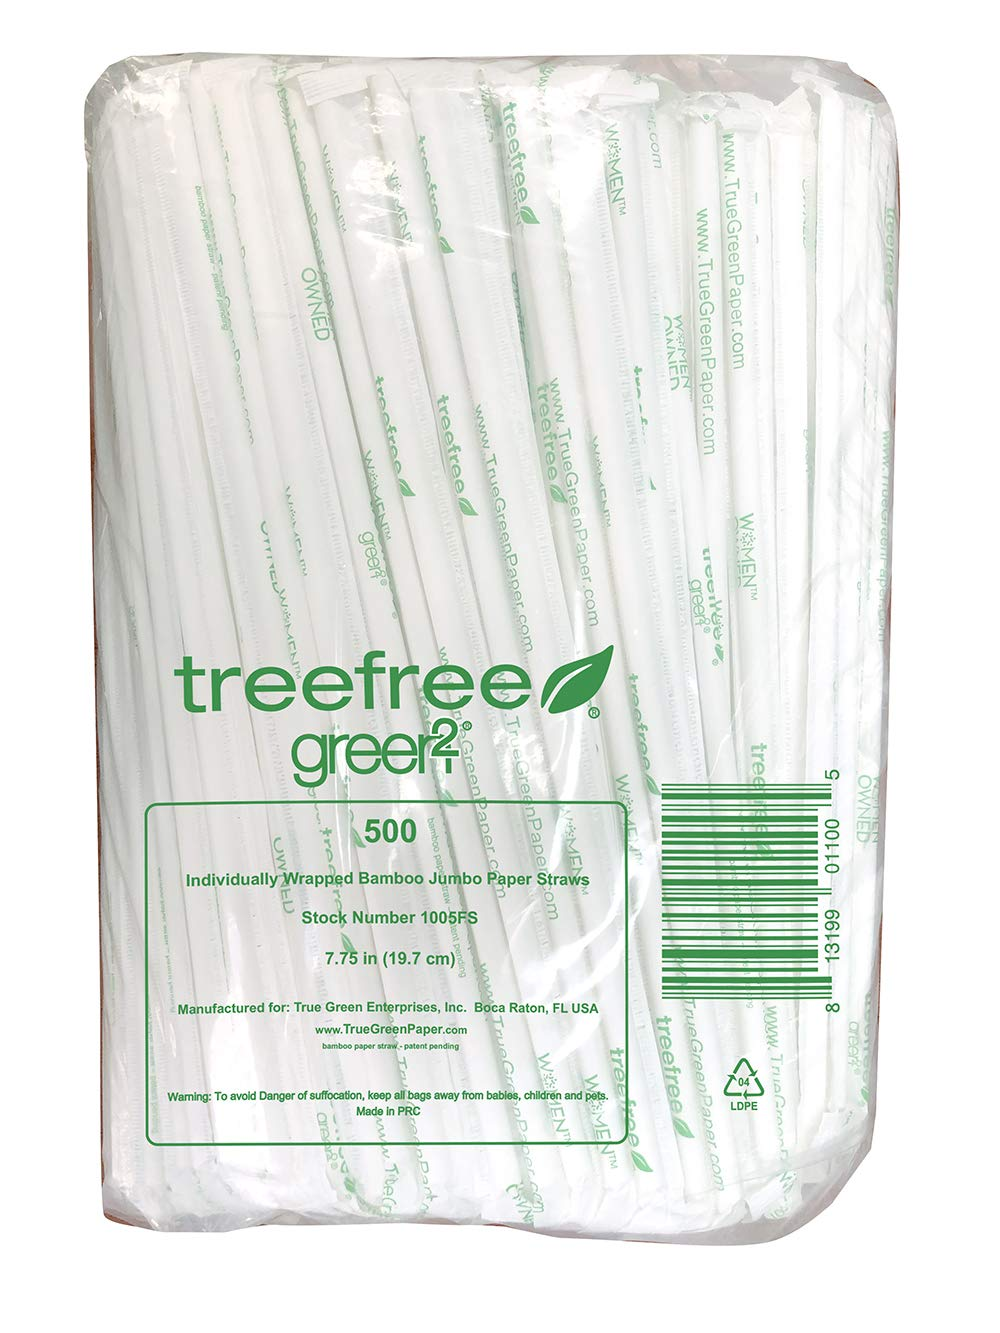 Green2 Individually Wrapped Bamboo Paper Straws 7.75'' 5000 Ct, 15.55 Pound by Green2